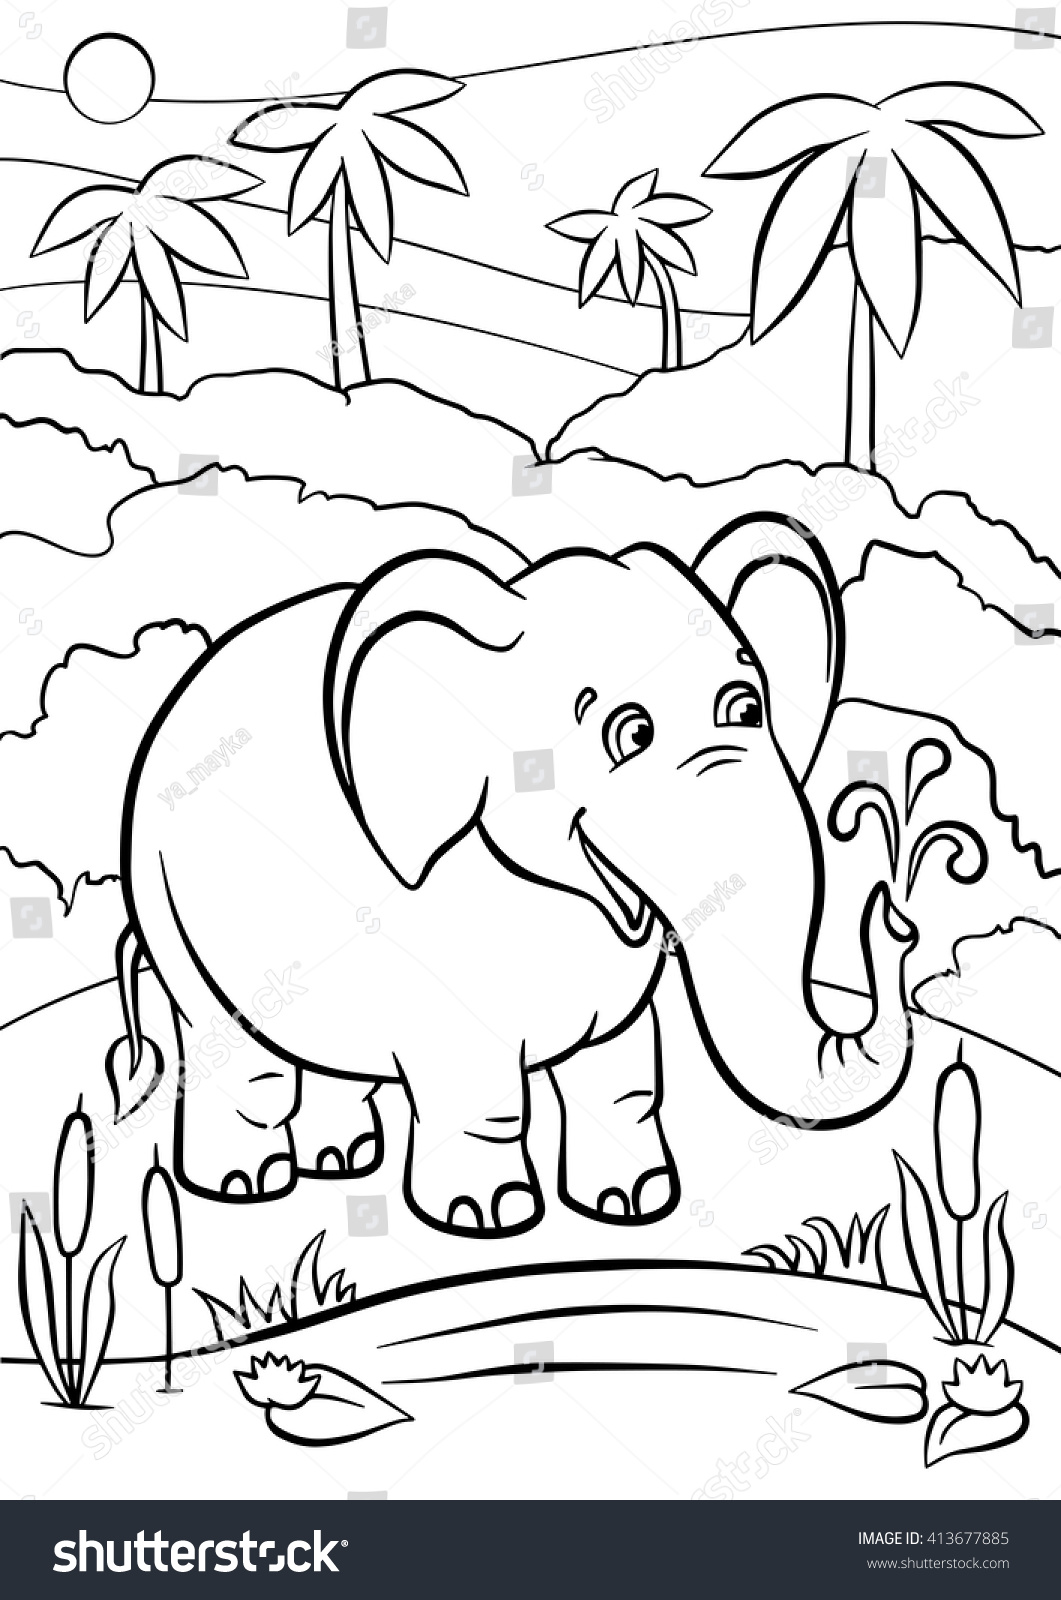 Coloring pages animals cute elephant stands in the forest and smiles